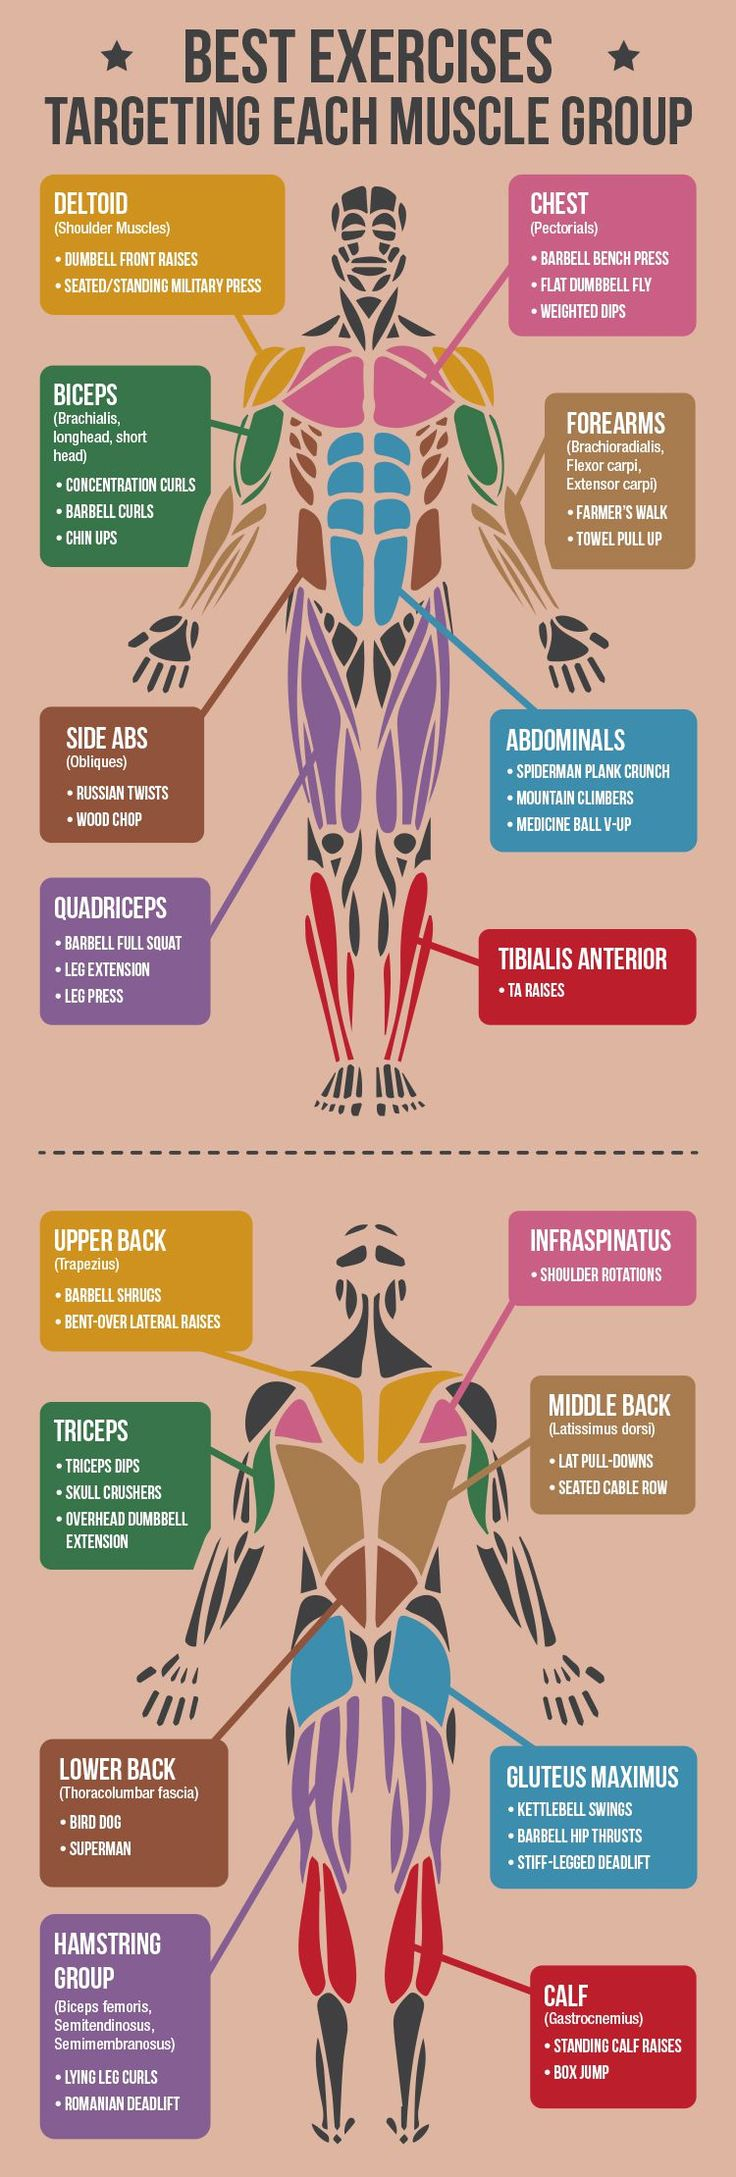 *CLICK FOR ALL EXERCISES* Best Exercises Targeting Each Muscle Group